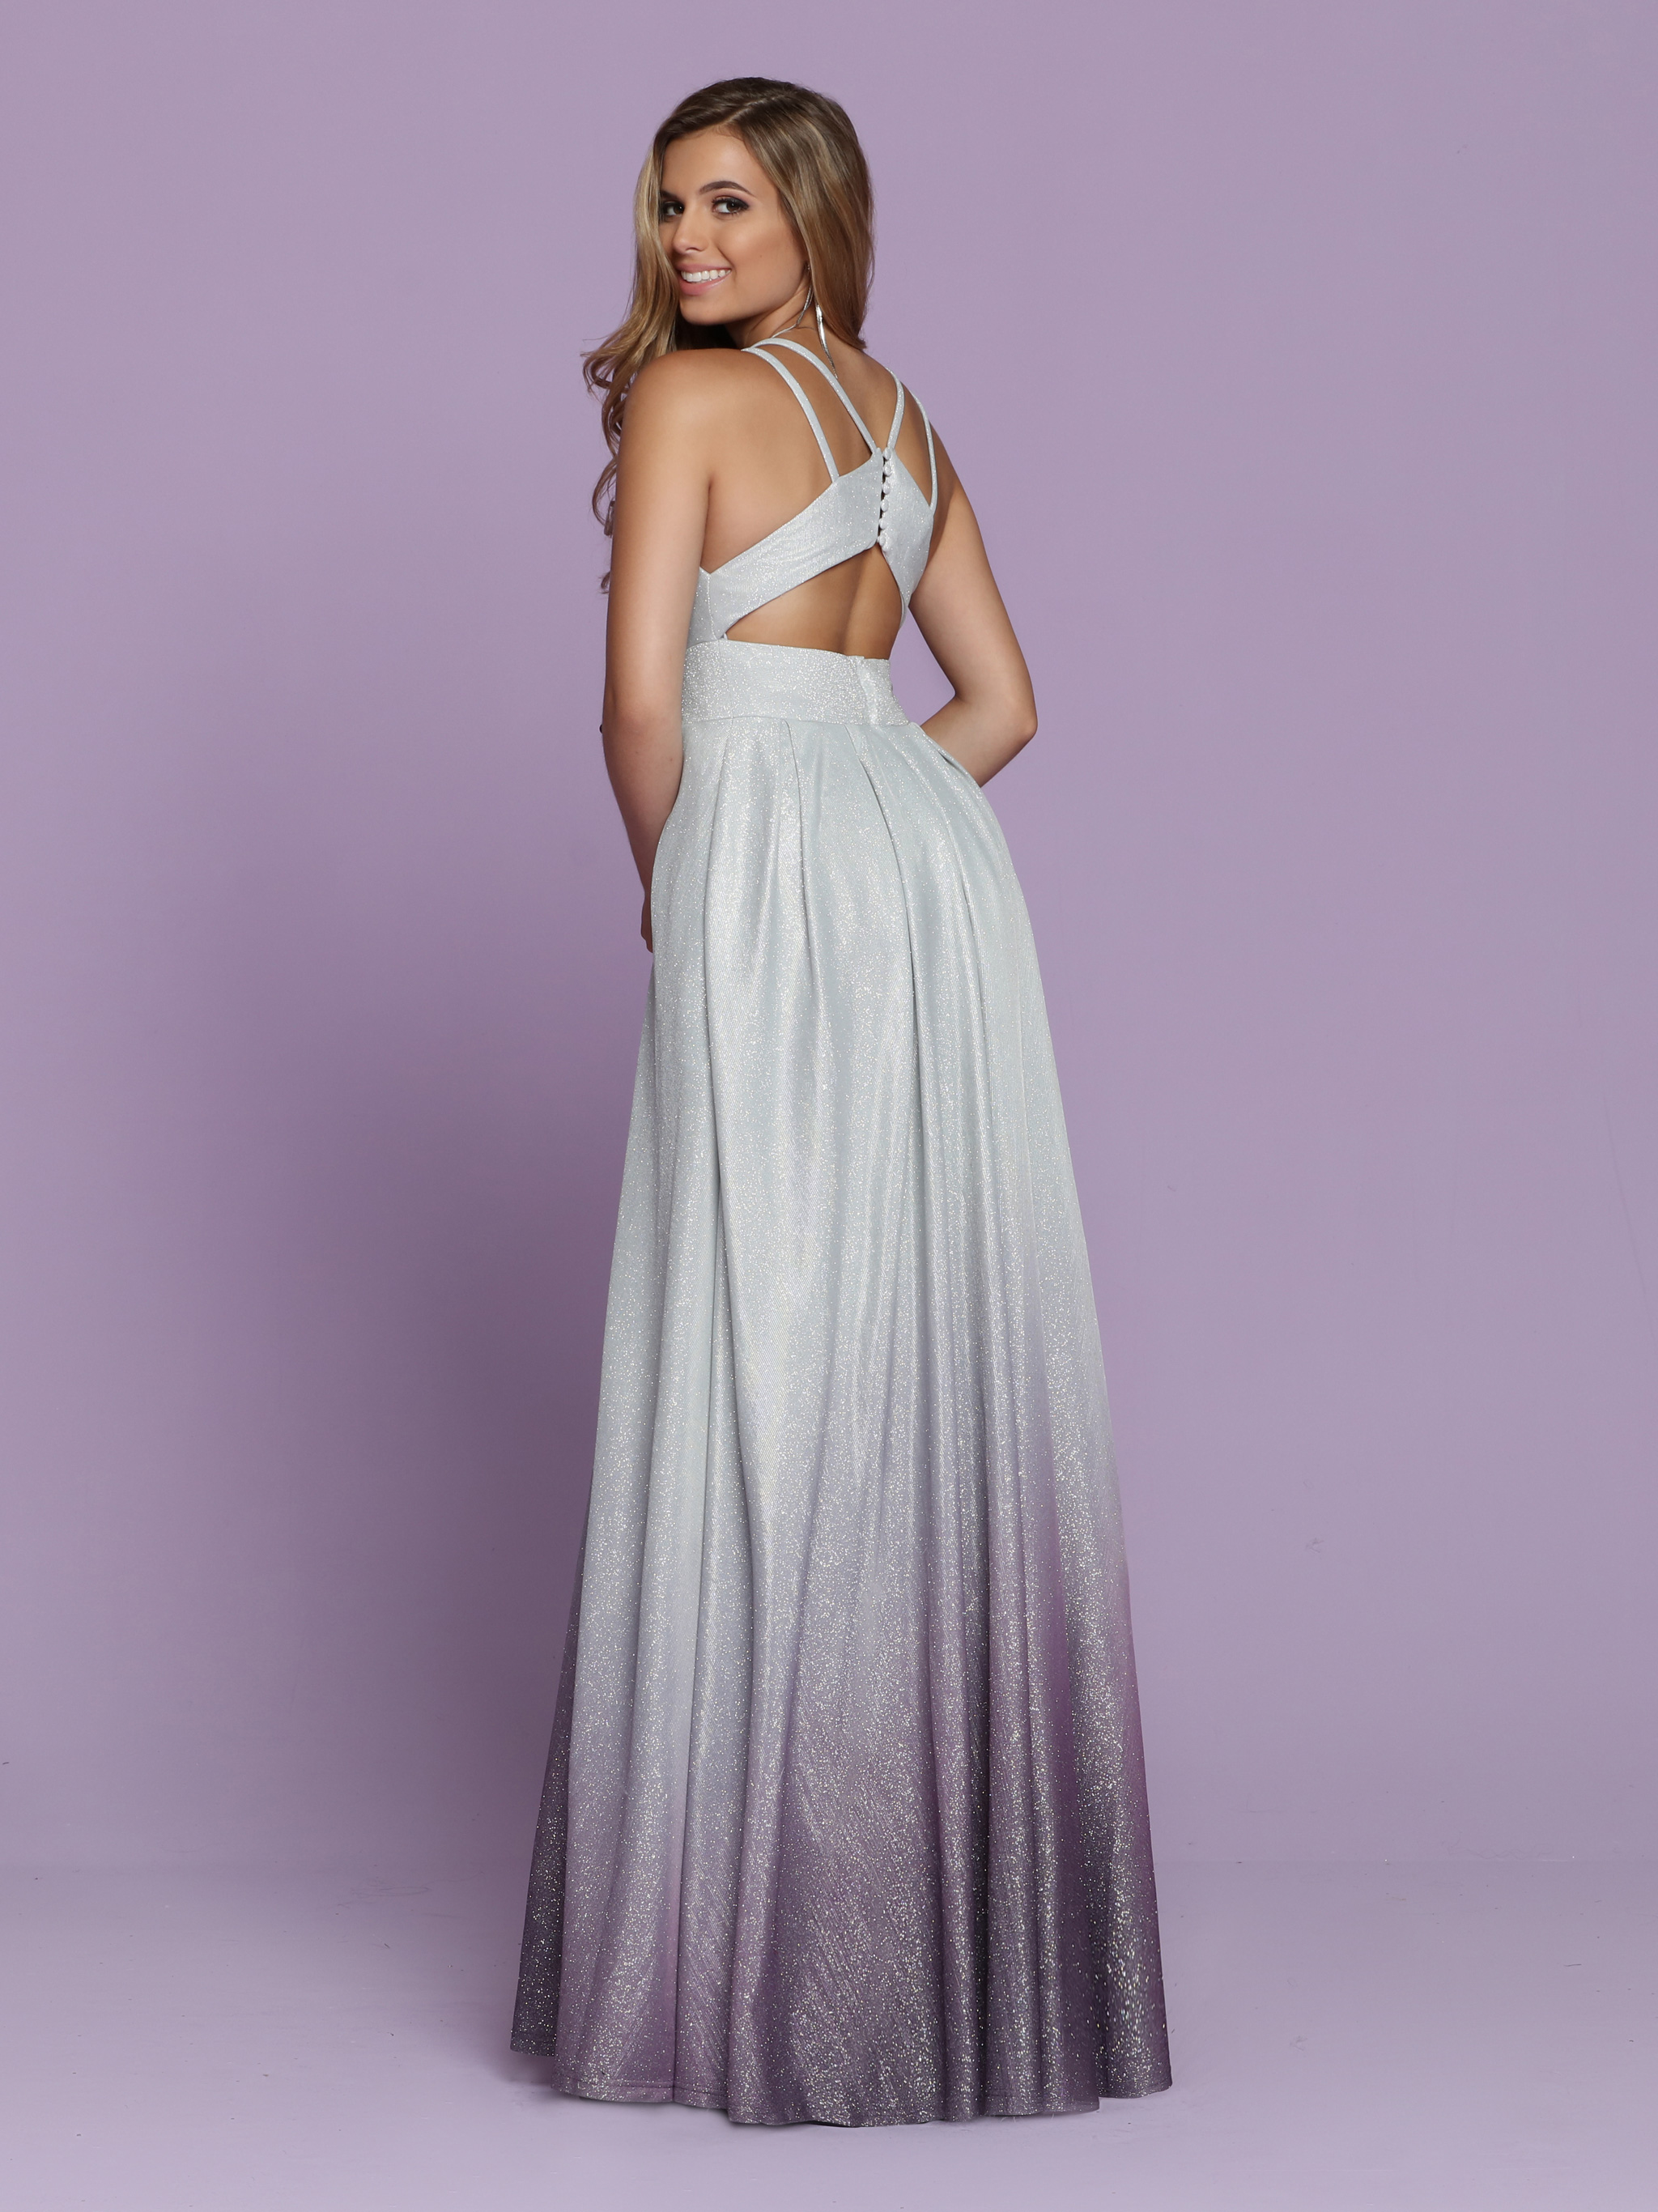 Image showing back view of style #72036